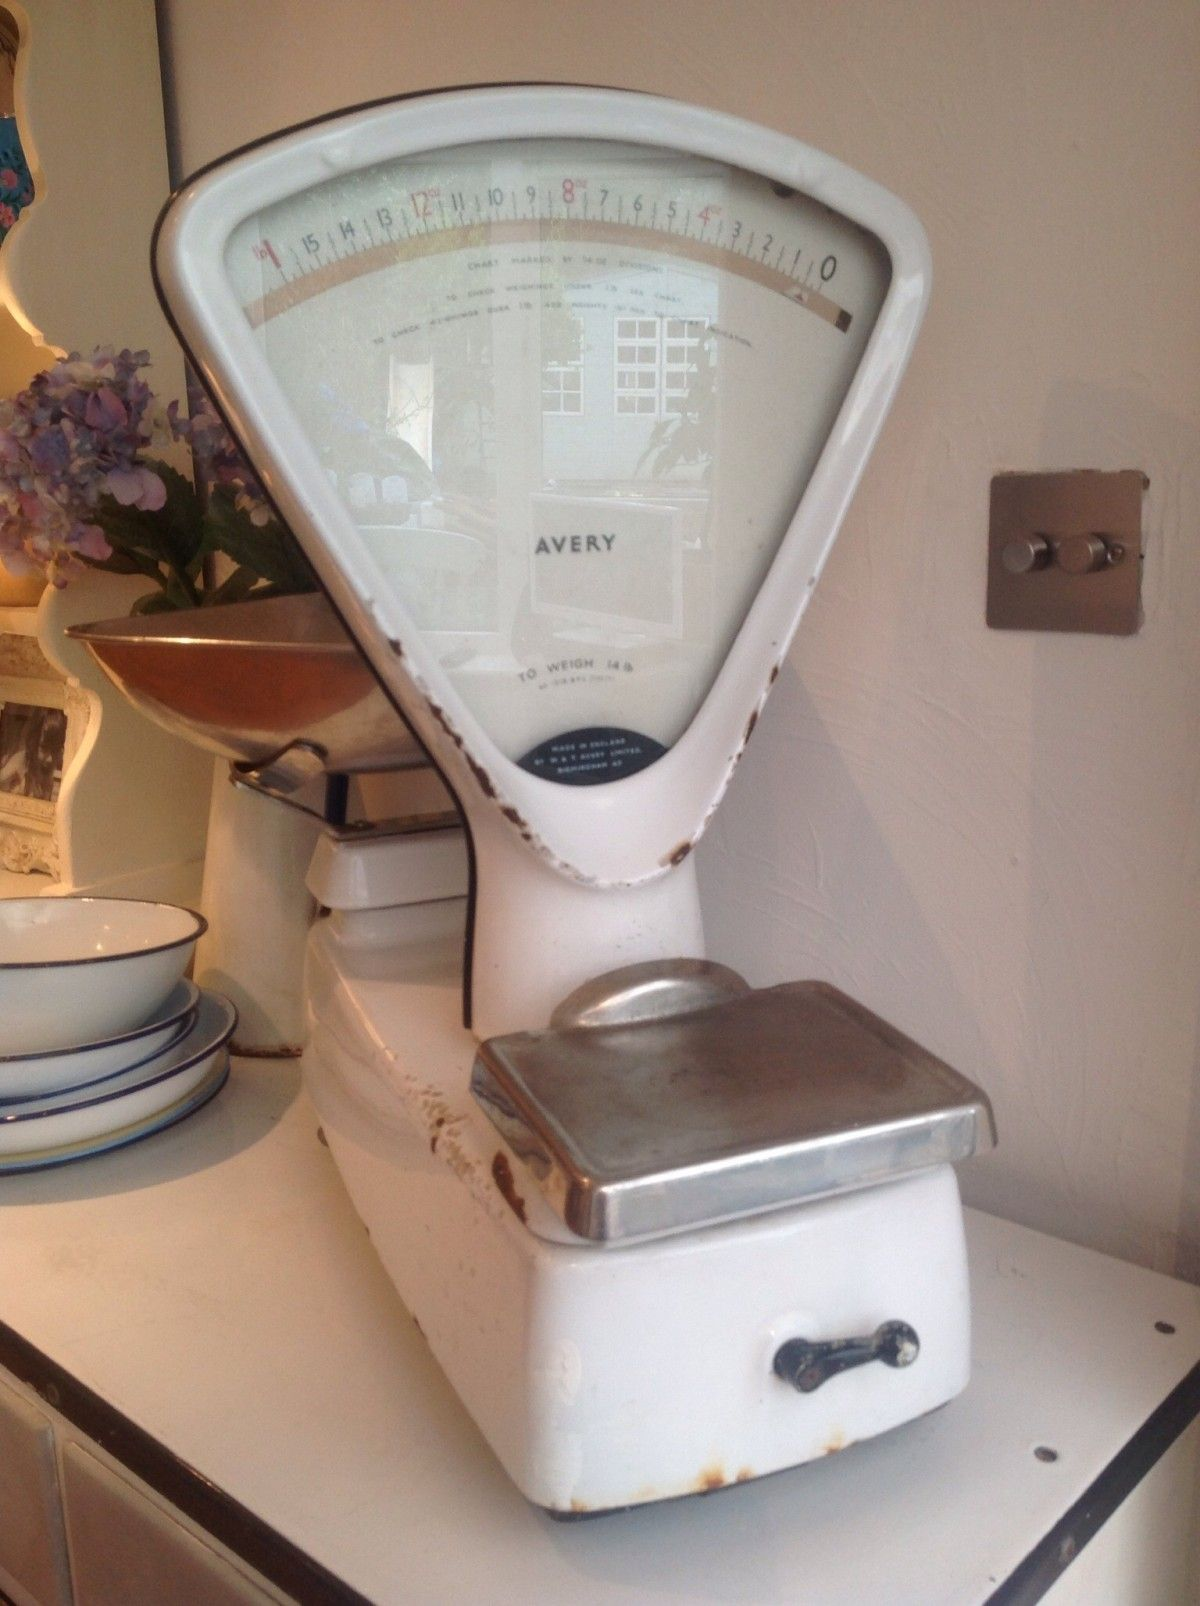 120 Retro Sweet Shop Grocery Avery Weighing Scales Retro Sweet Shop Weighing Scale Grocery